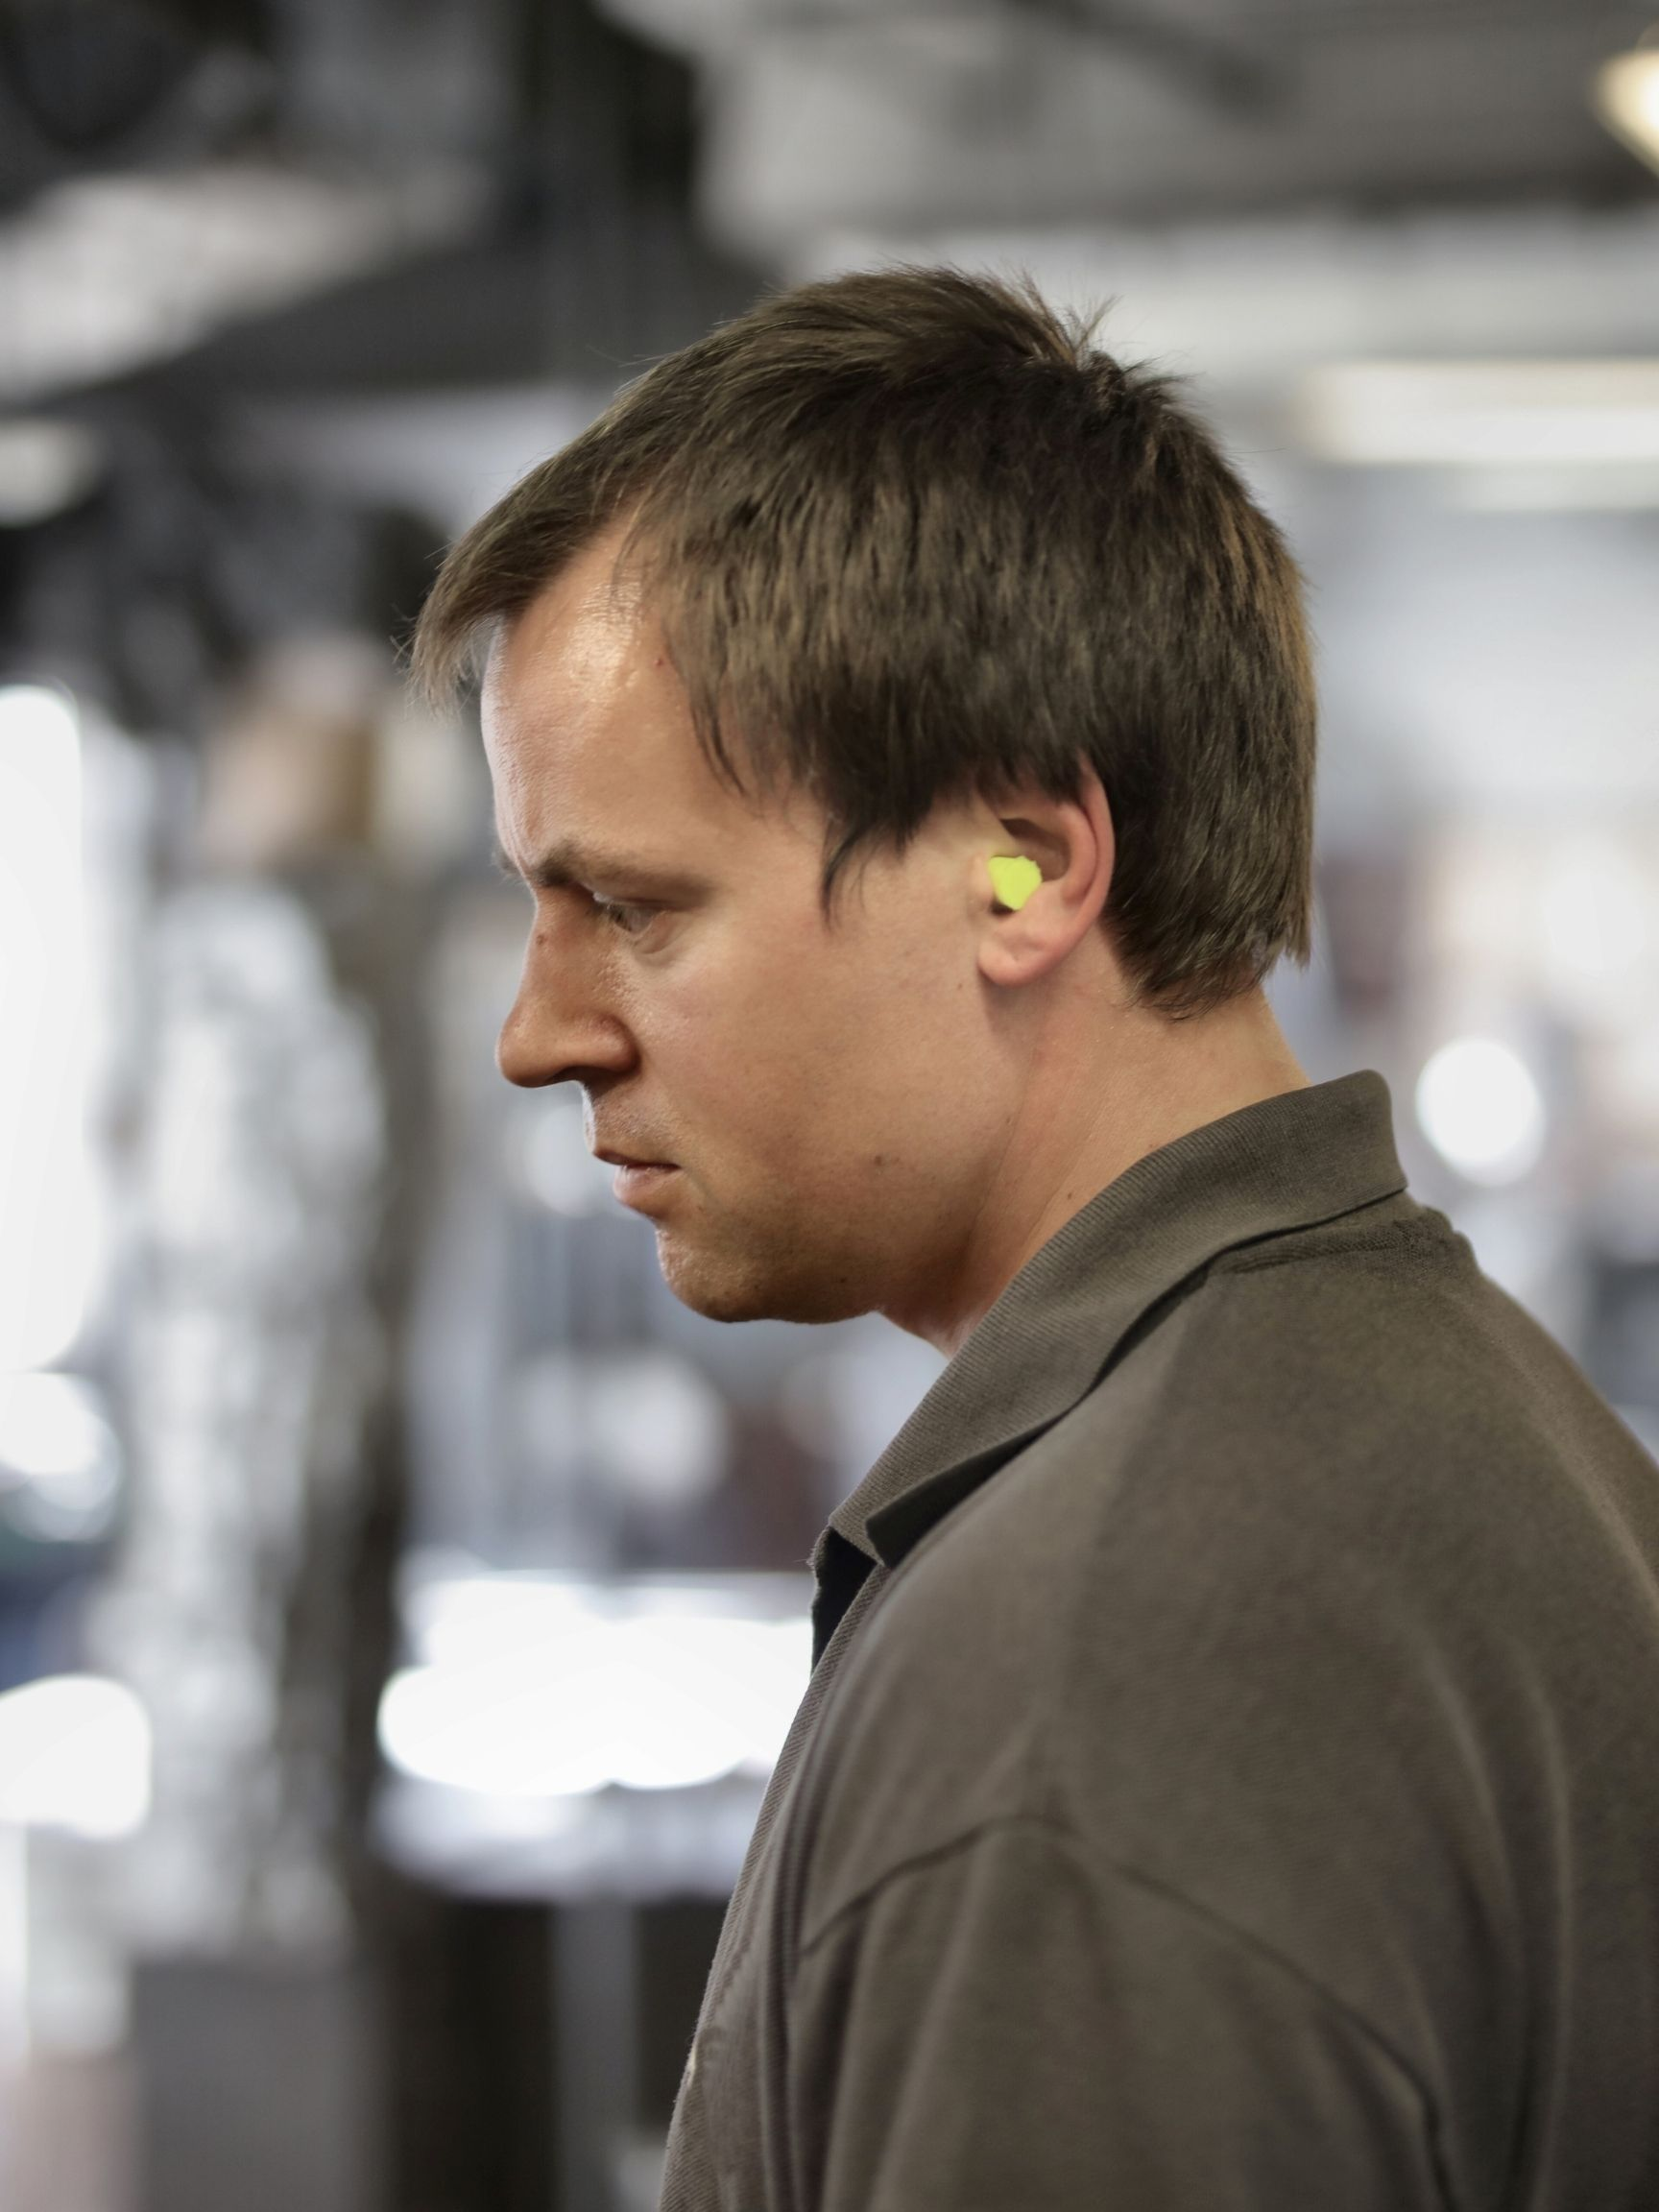 Side profile of a middle aged man wearing earplugs inside a factory.